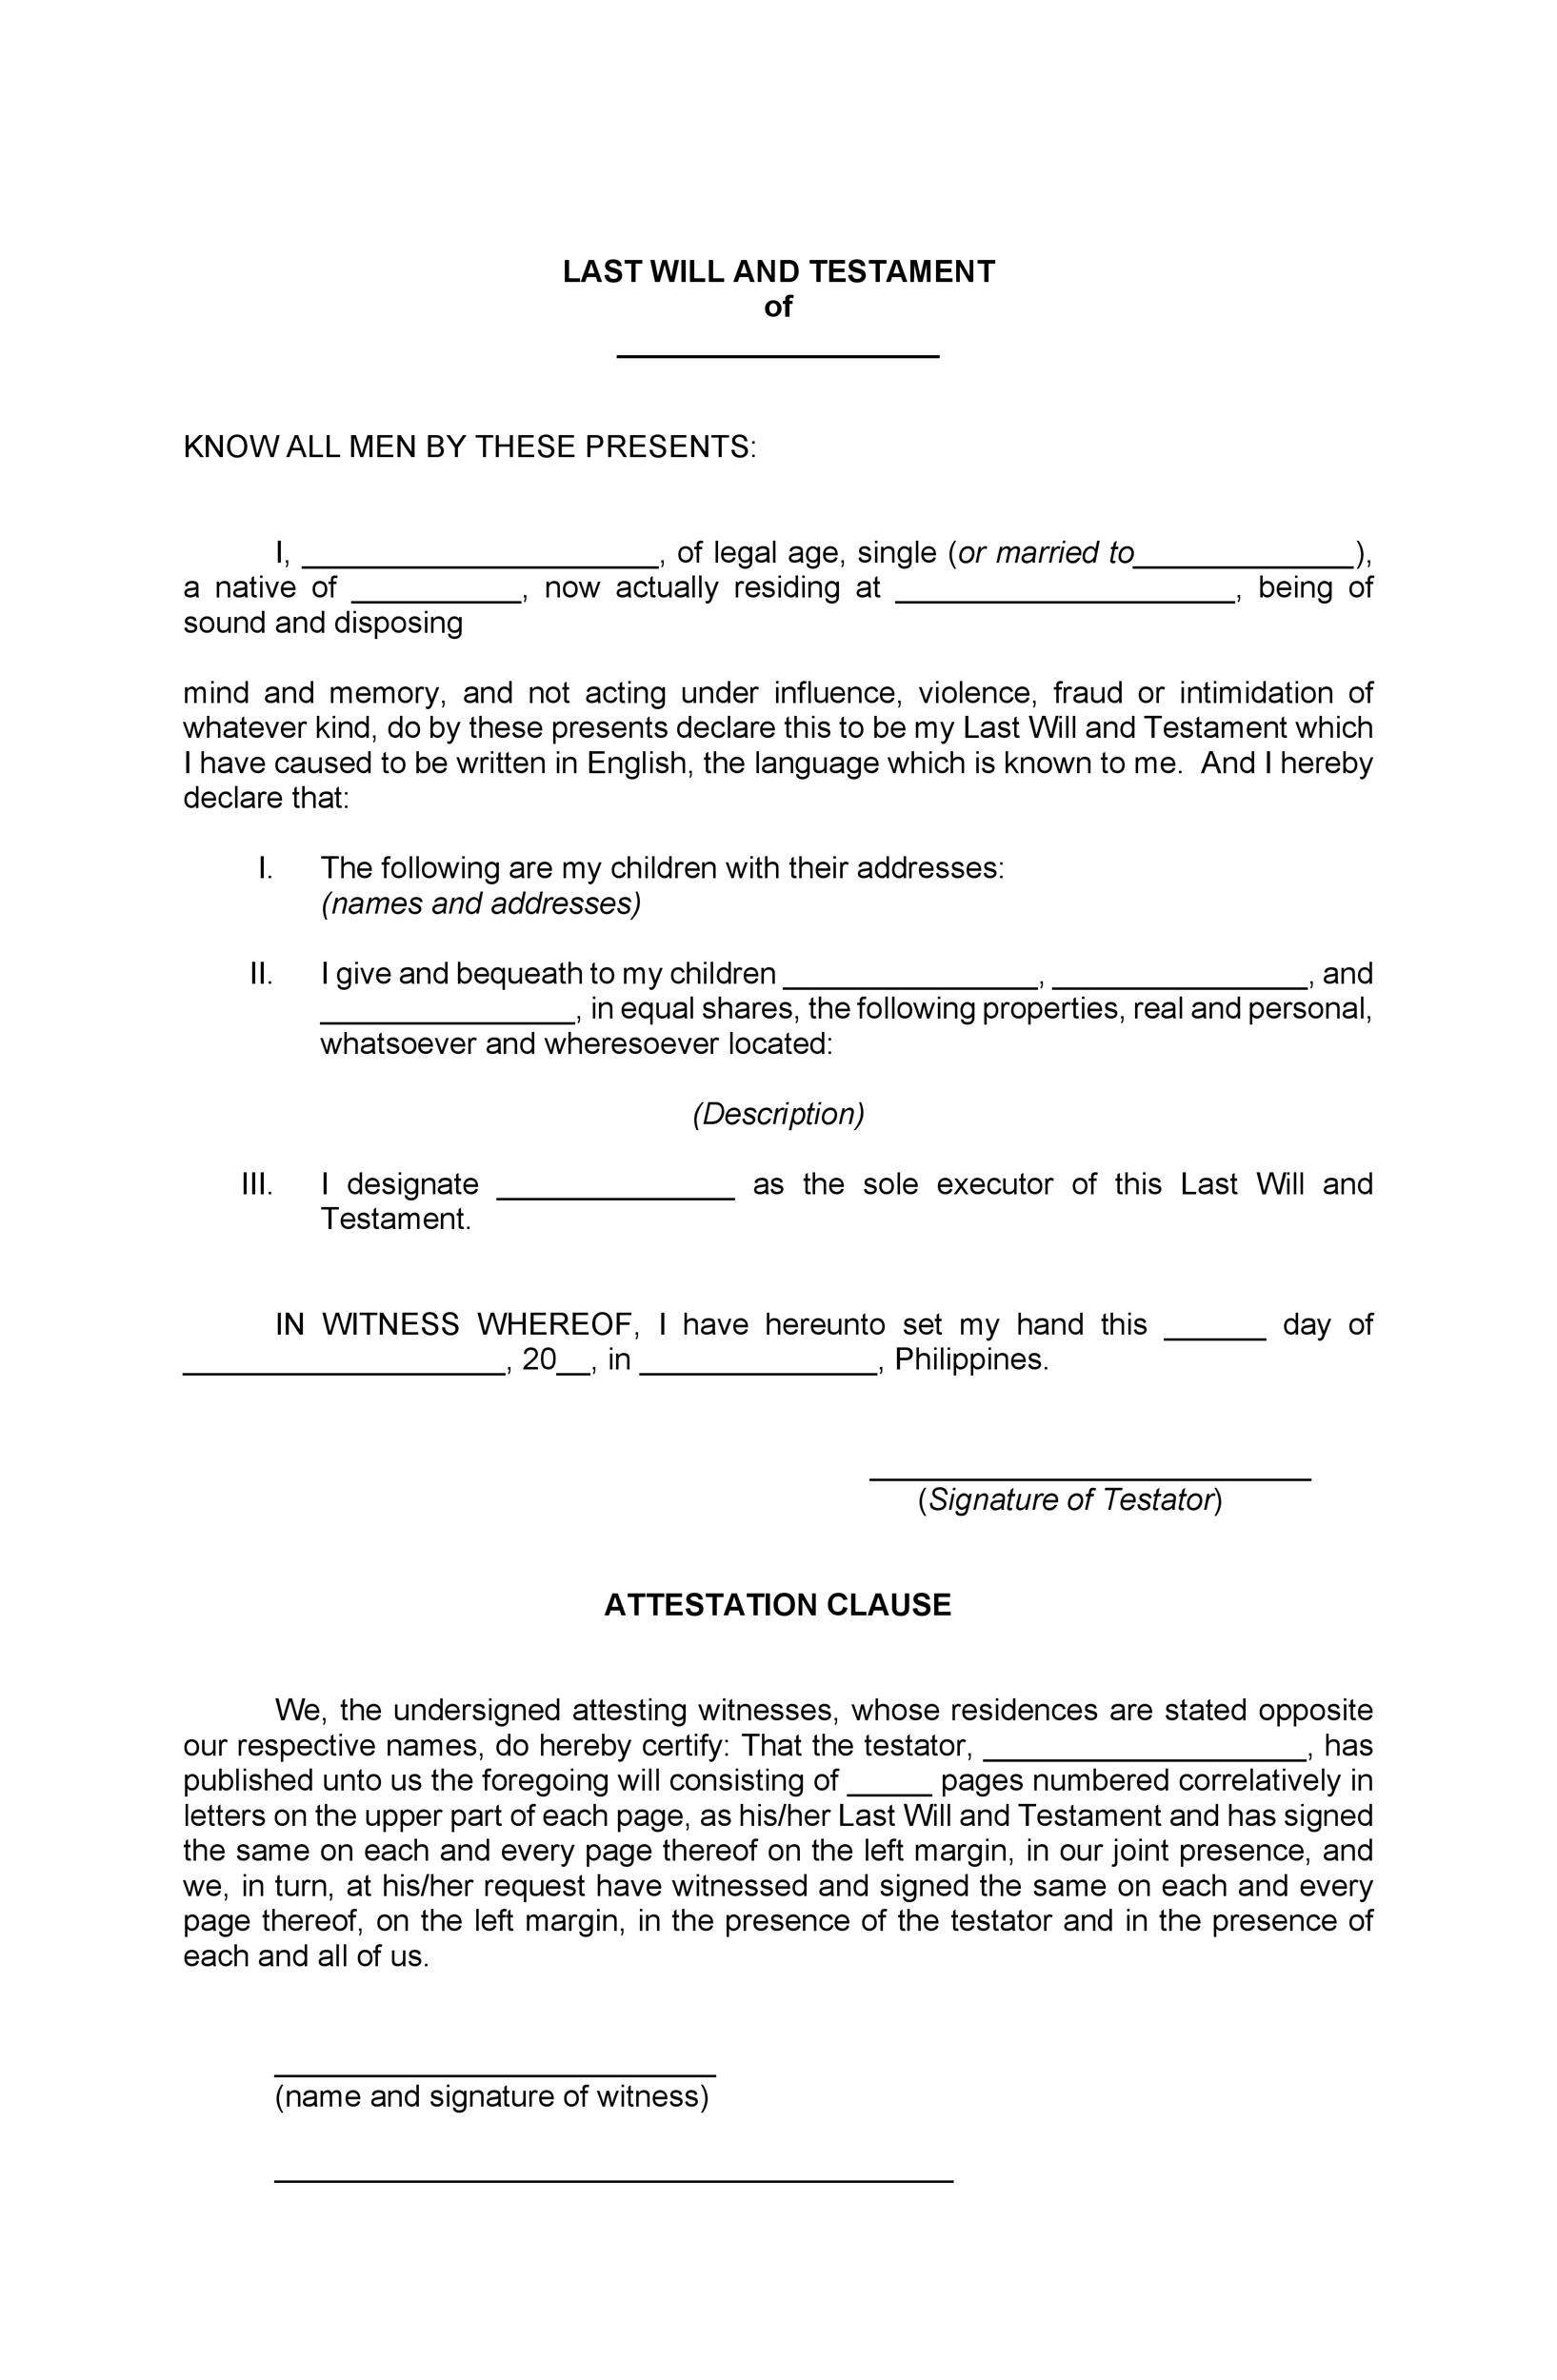 last will and testament free template maryland - 39 last will and testament forms templates template lab